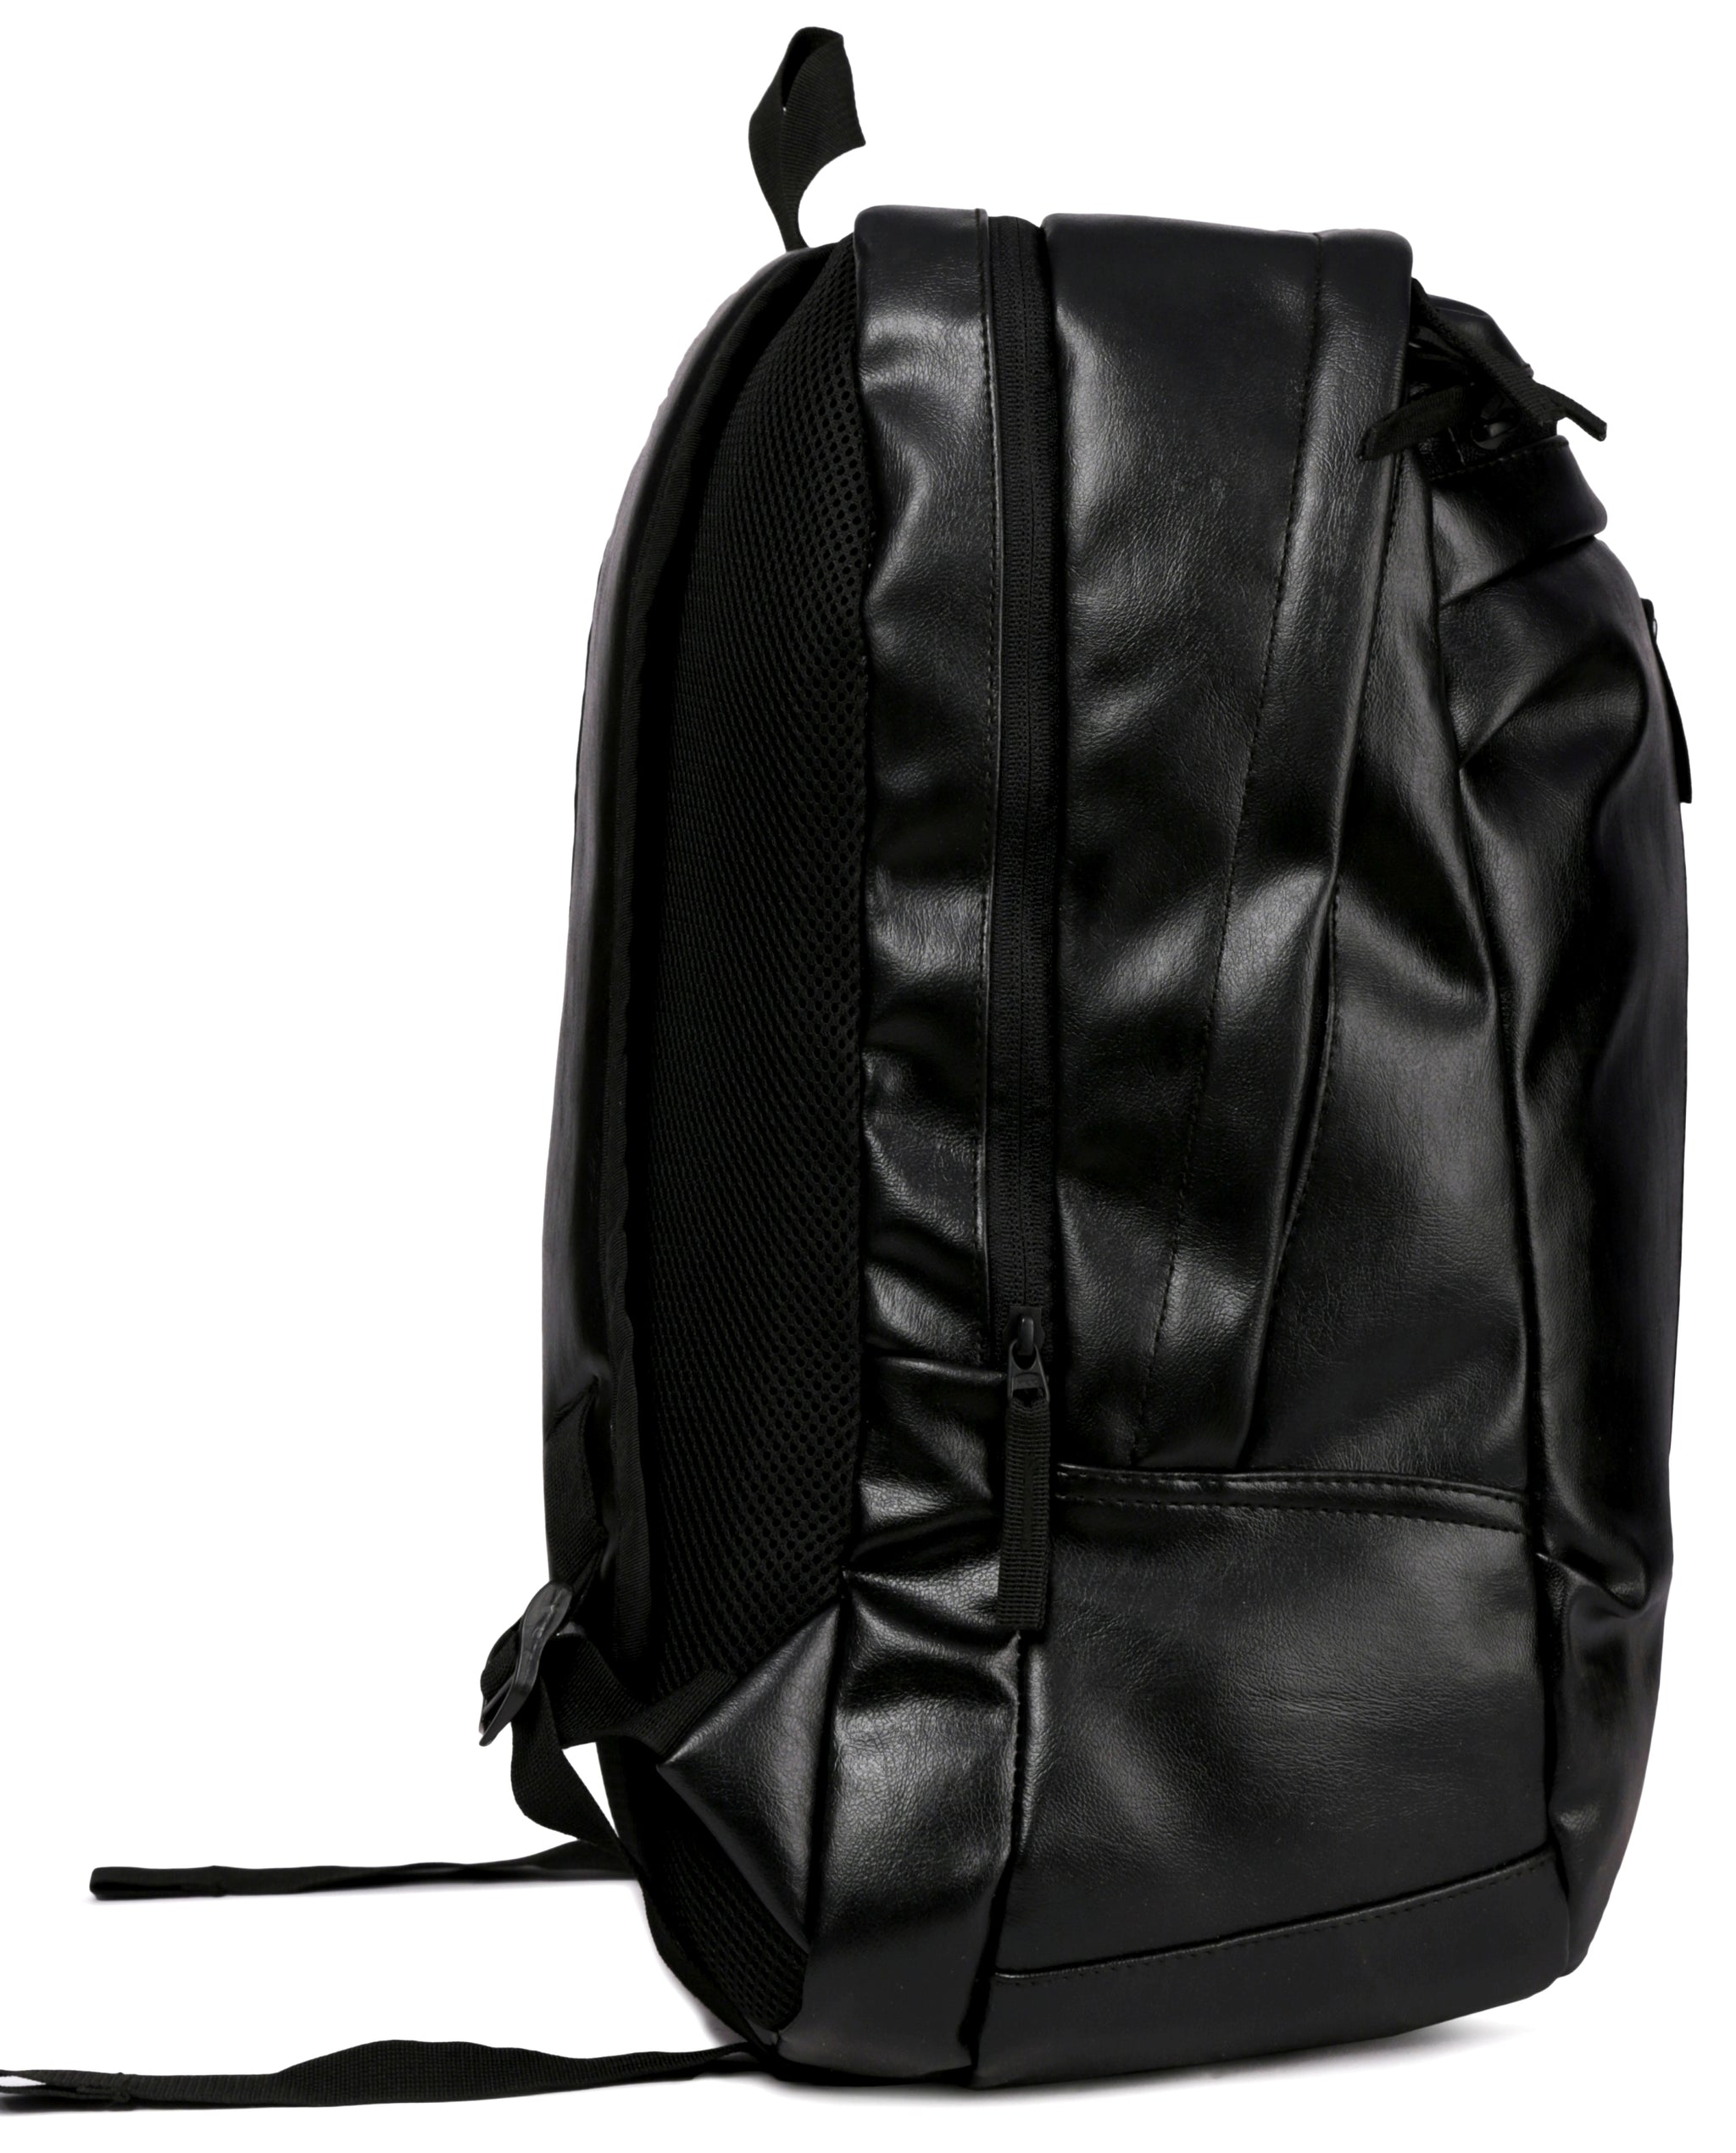 F Gear Buddy 25 L Laptop Backpack (Black)